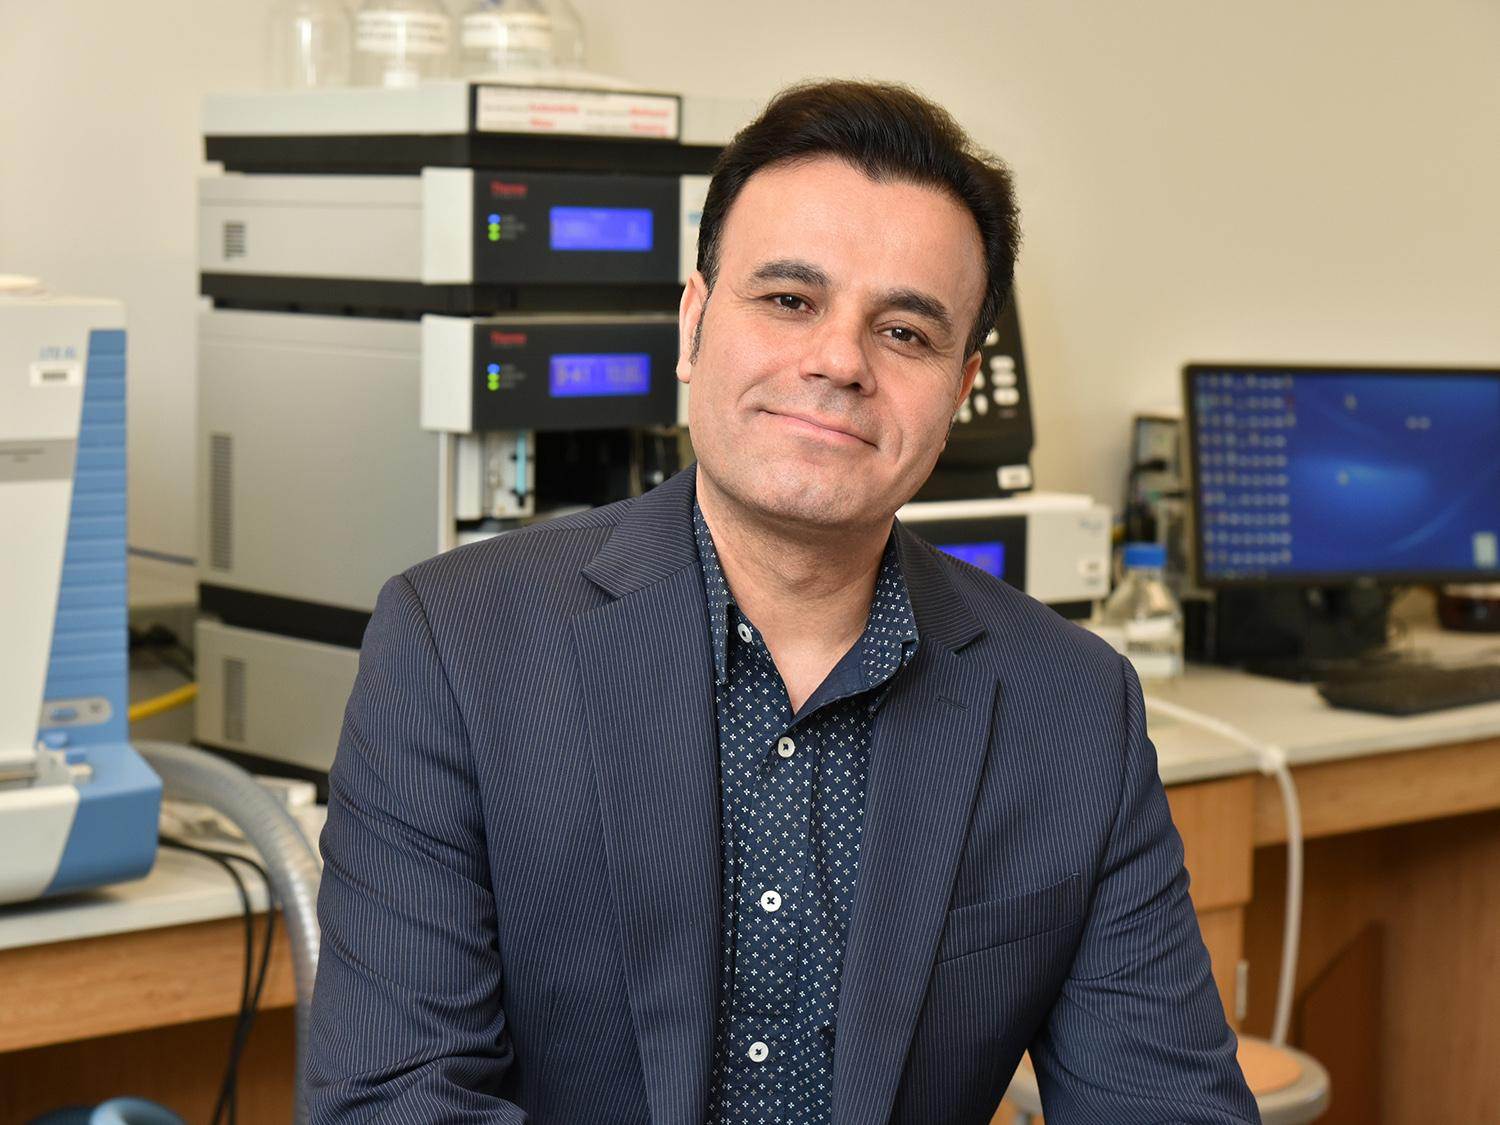 Vadoud Niri was honored for his mentorship of student researchers